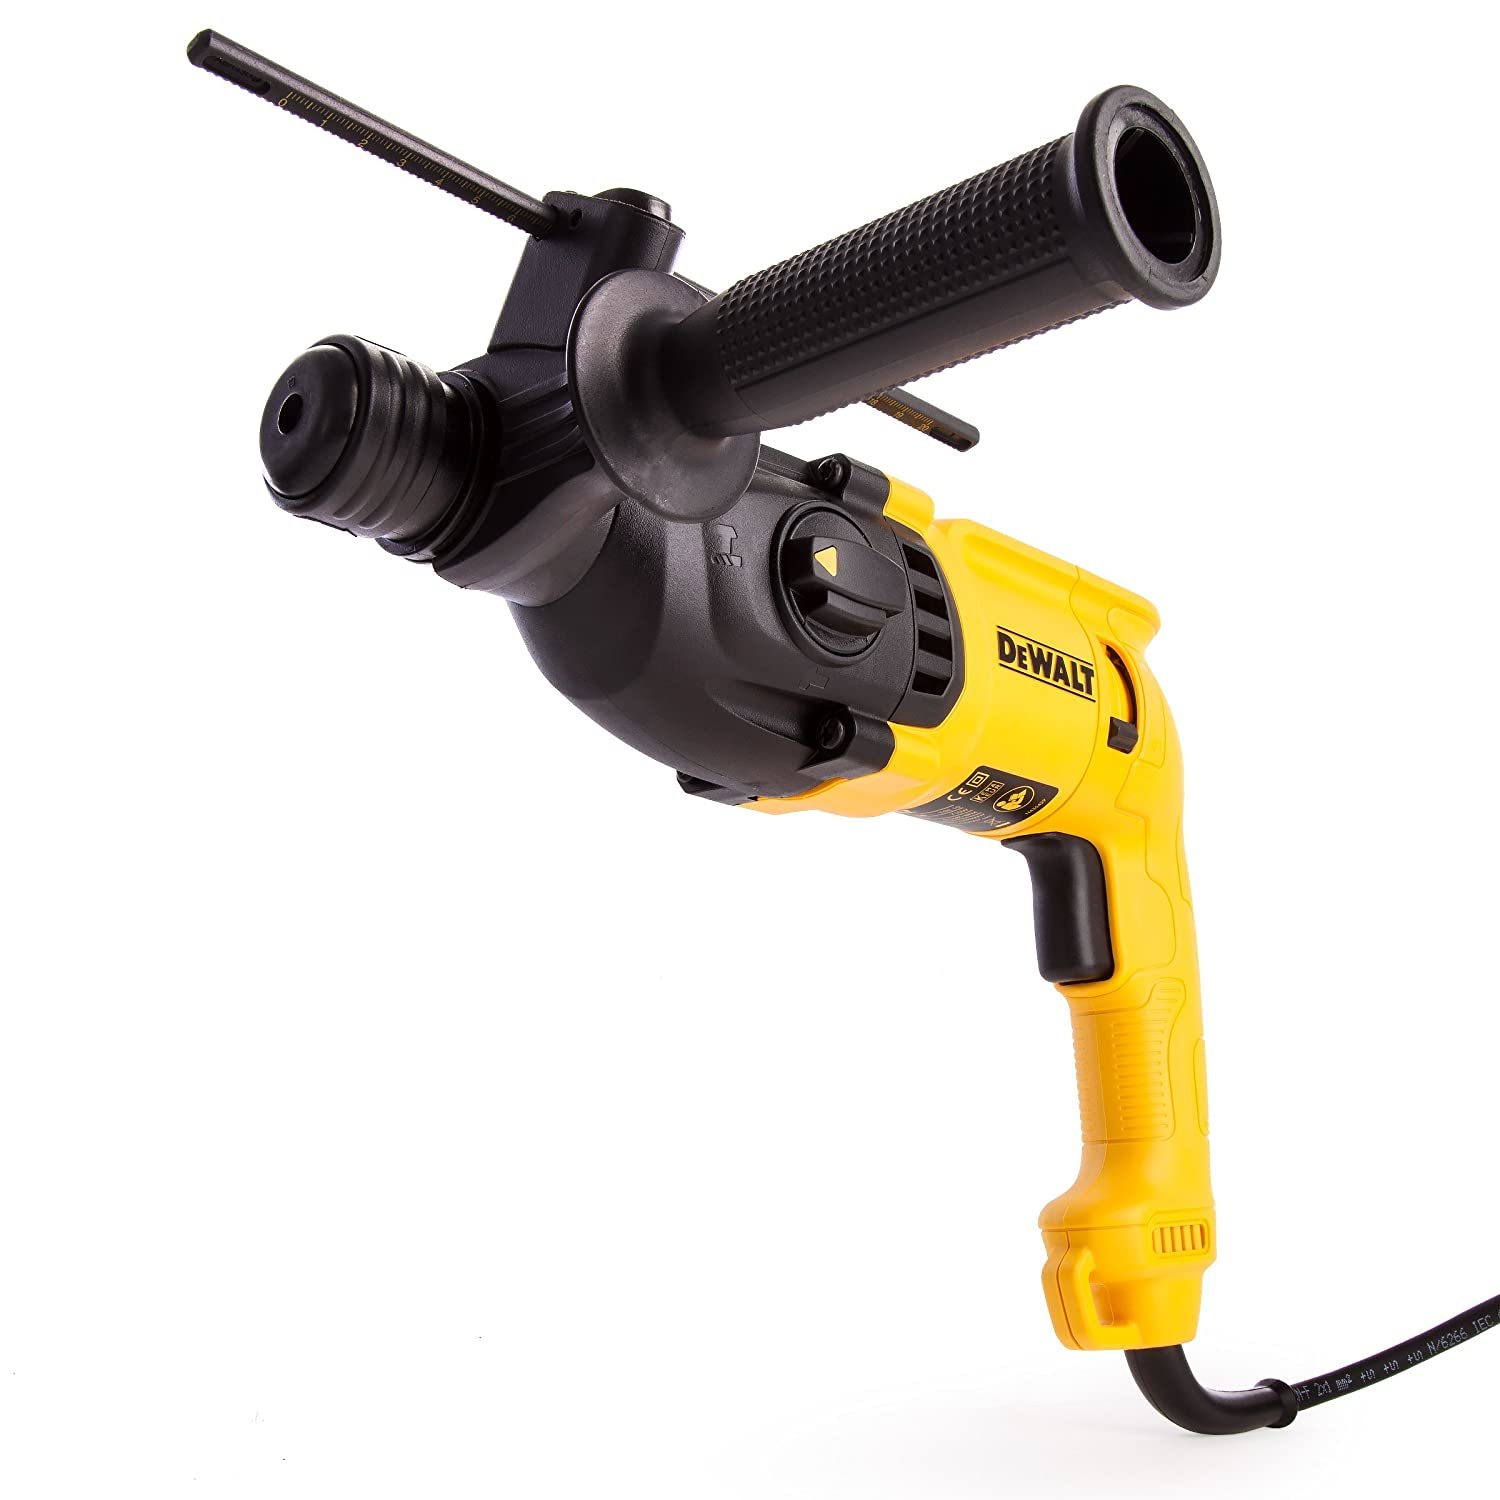 PLUS HAMMER DRILL MACHINE